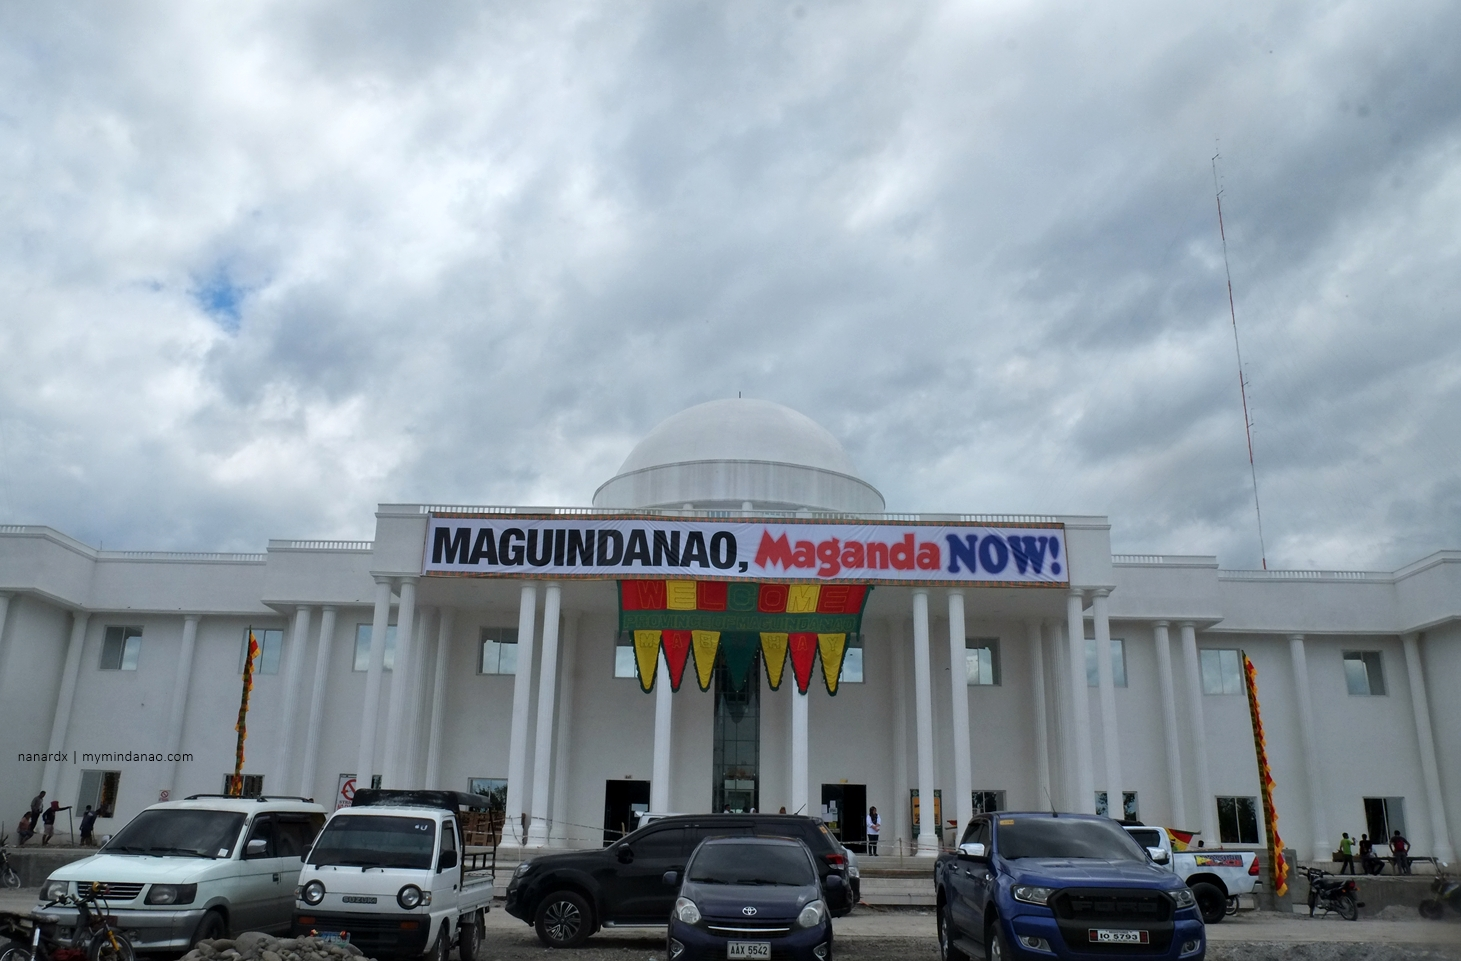 White House in Buluan. The New Provincial Capitol of Maguindanao.